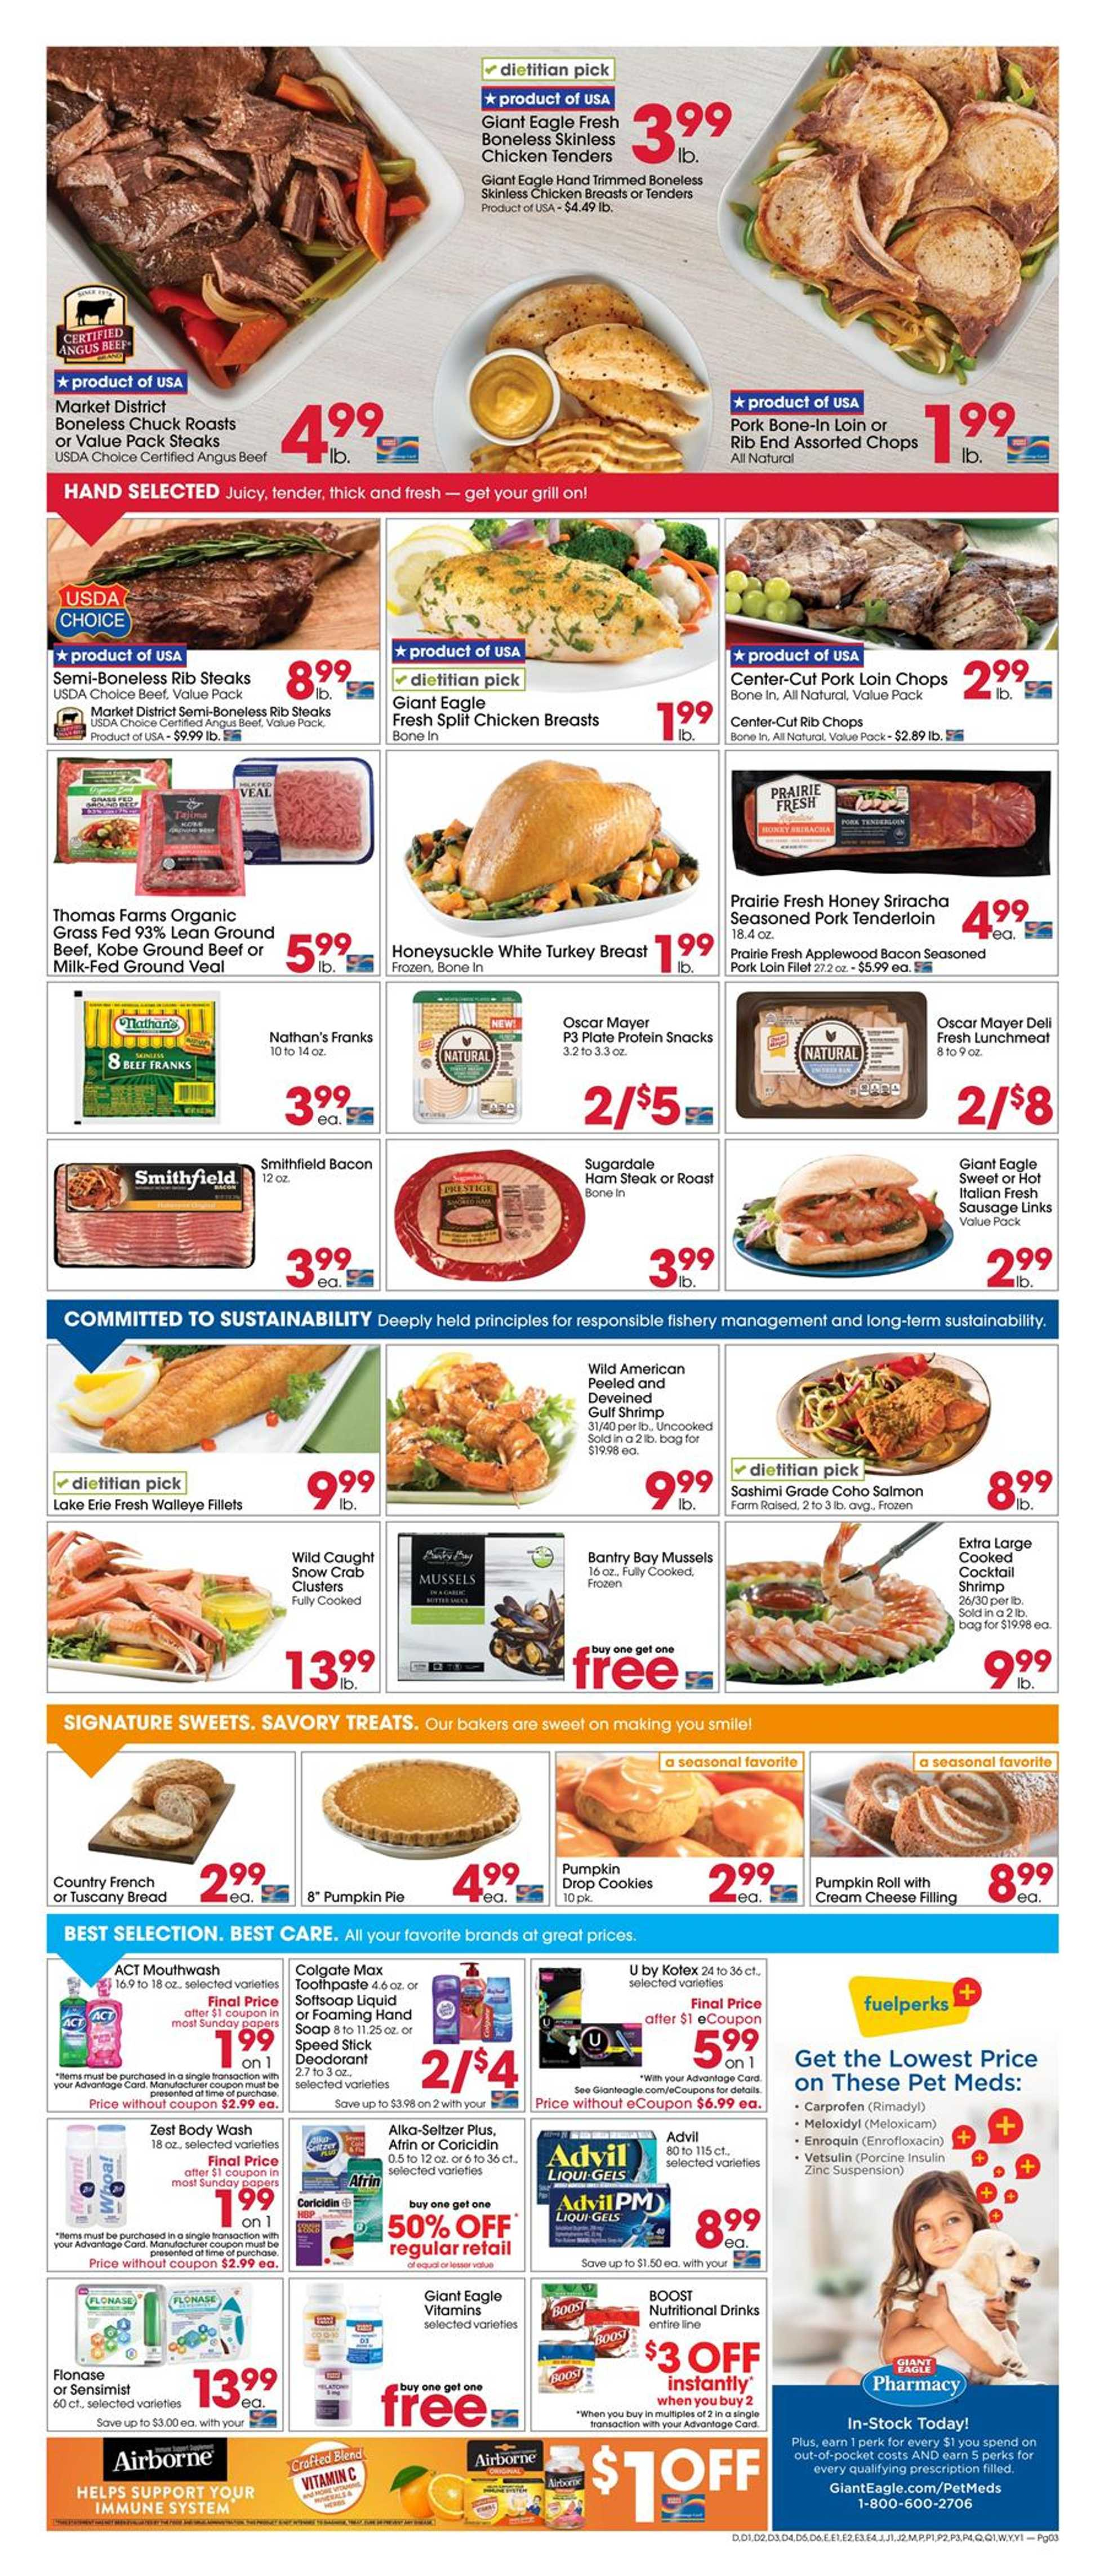 Giant Eagle - promo starting from 09/19/19 - page 3